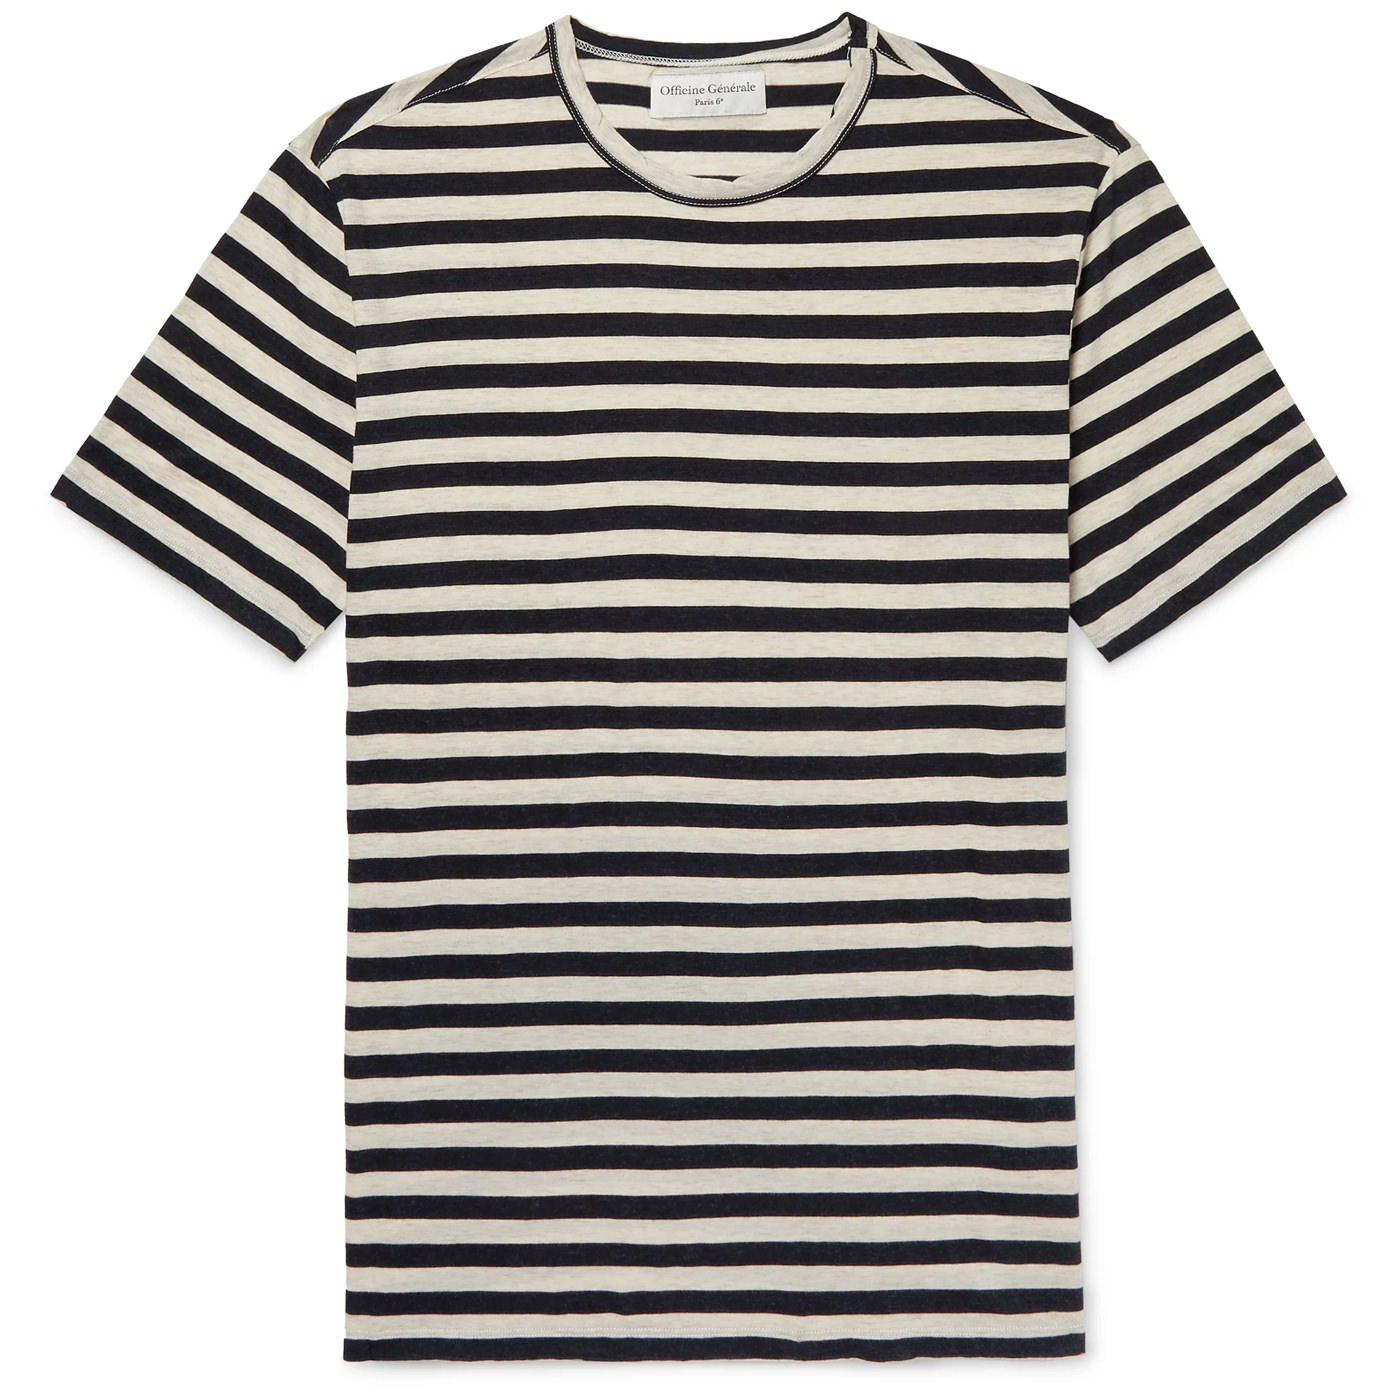 Style Mr Porter T-Shirt Marin Officine Générale